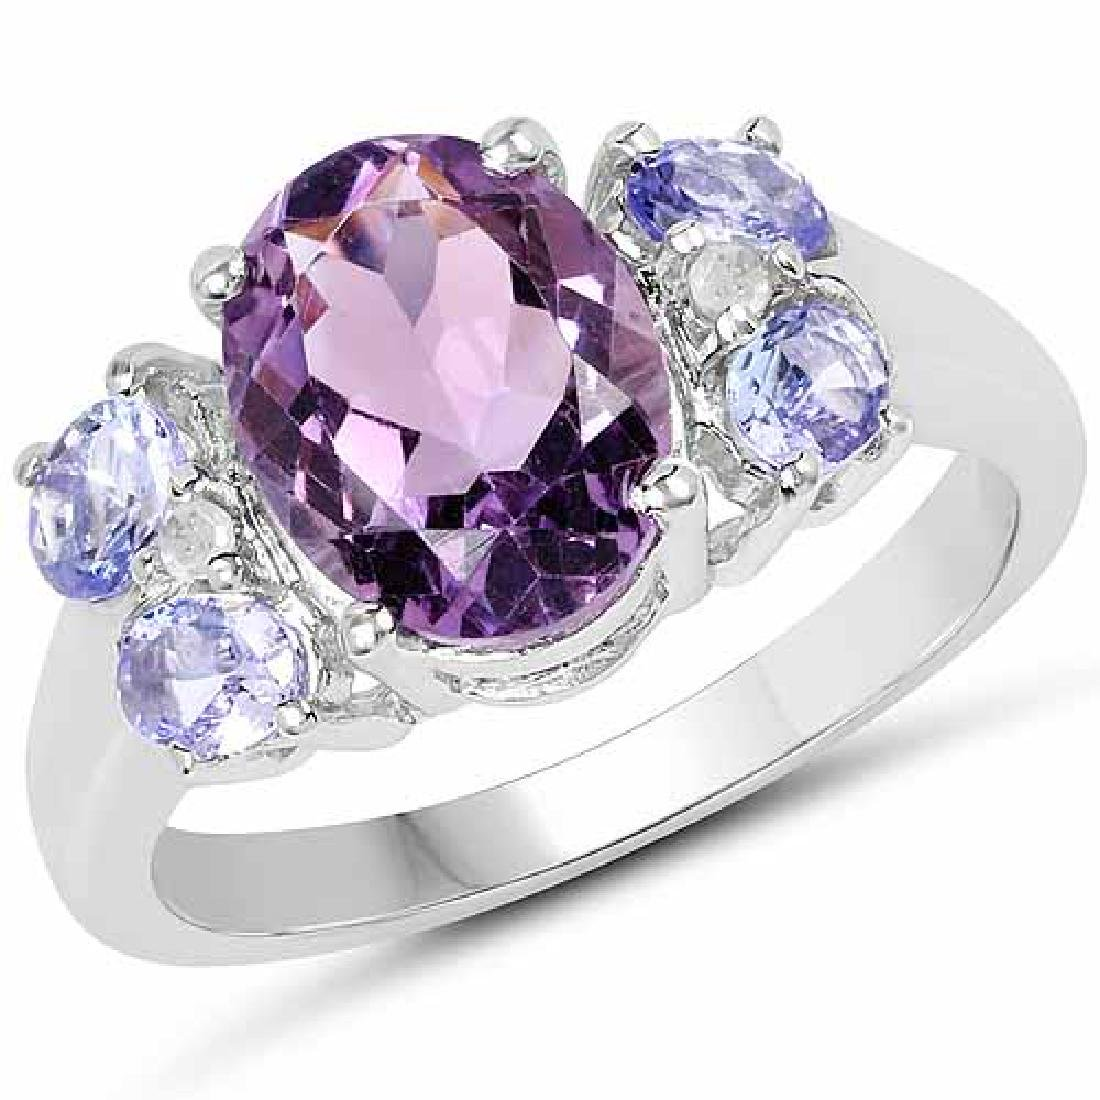 2.86 Carat Genuine Amethyst and Tanzanite .925 Sterling